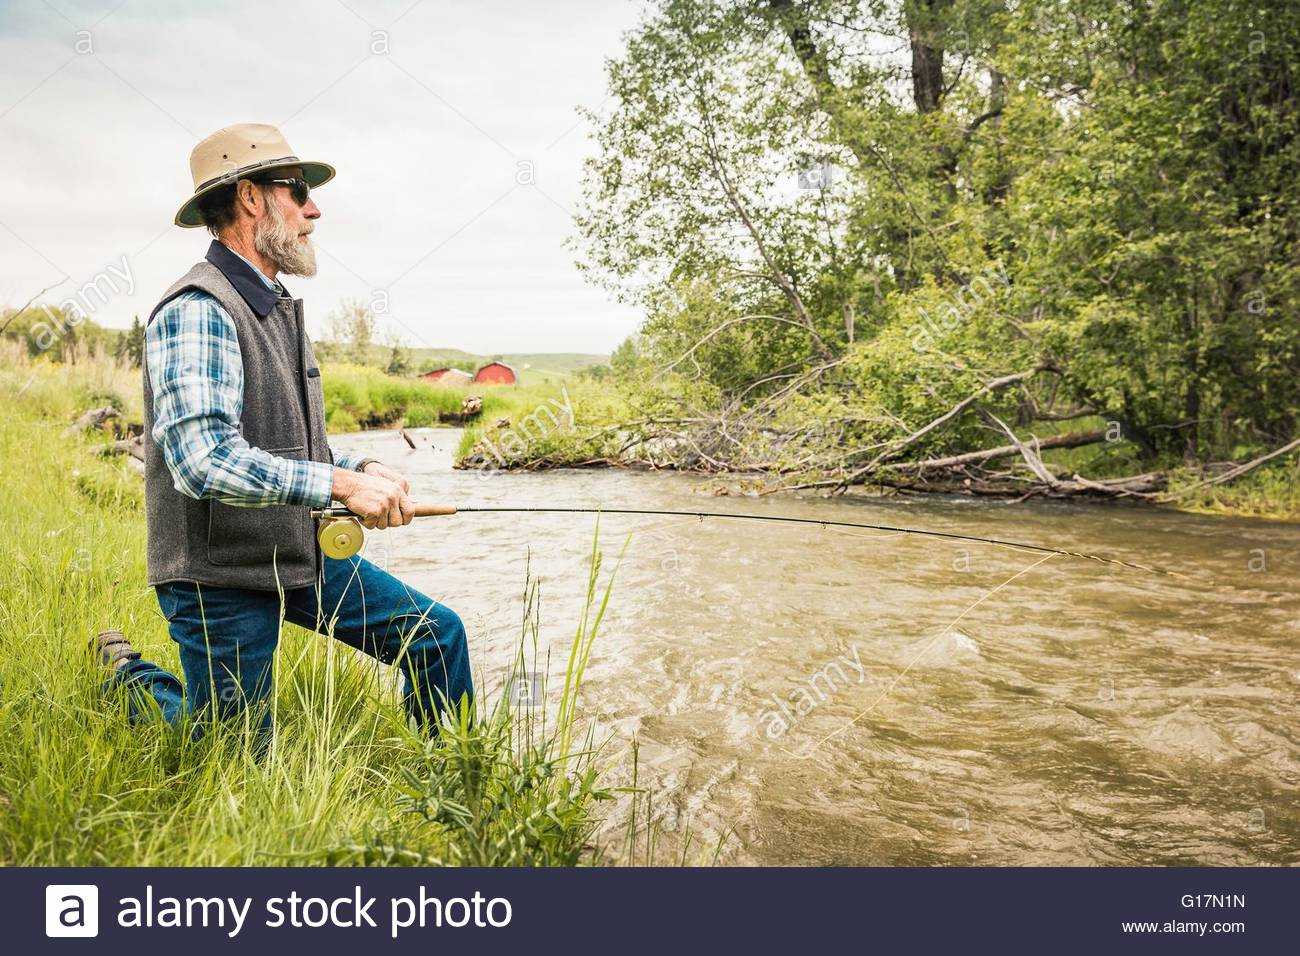 Man kneeling on river bank fly fishing - Stock Image